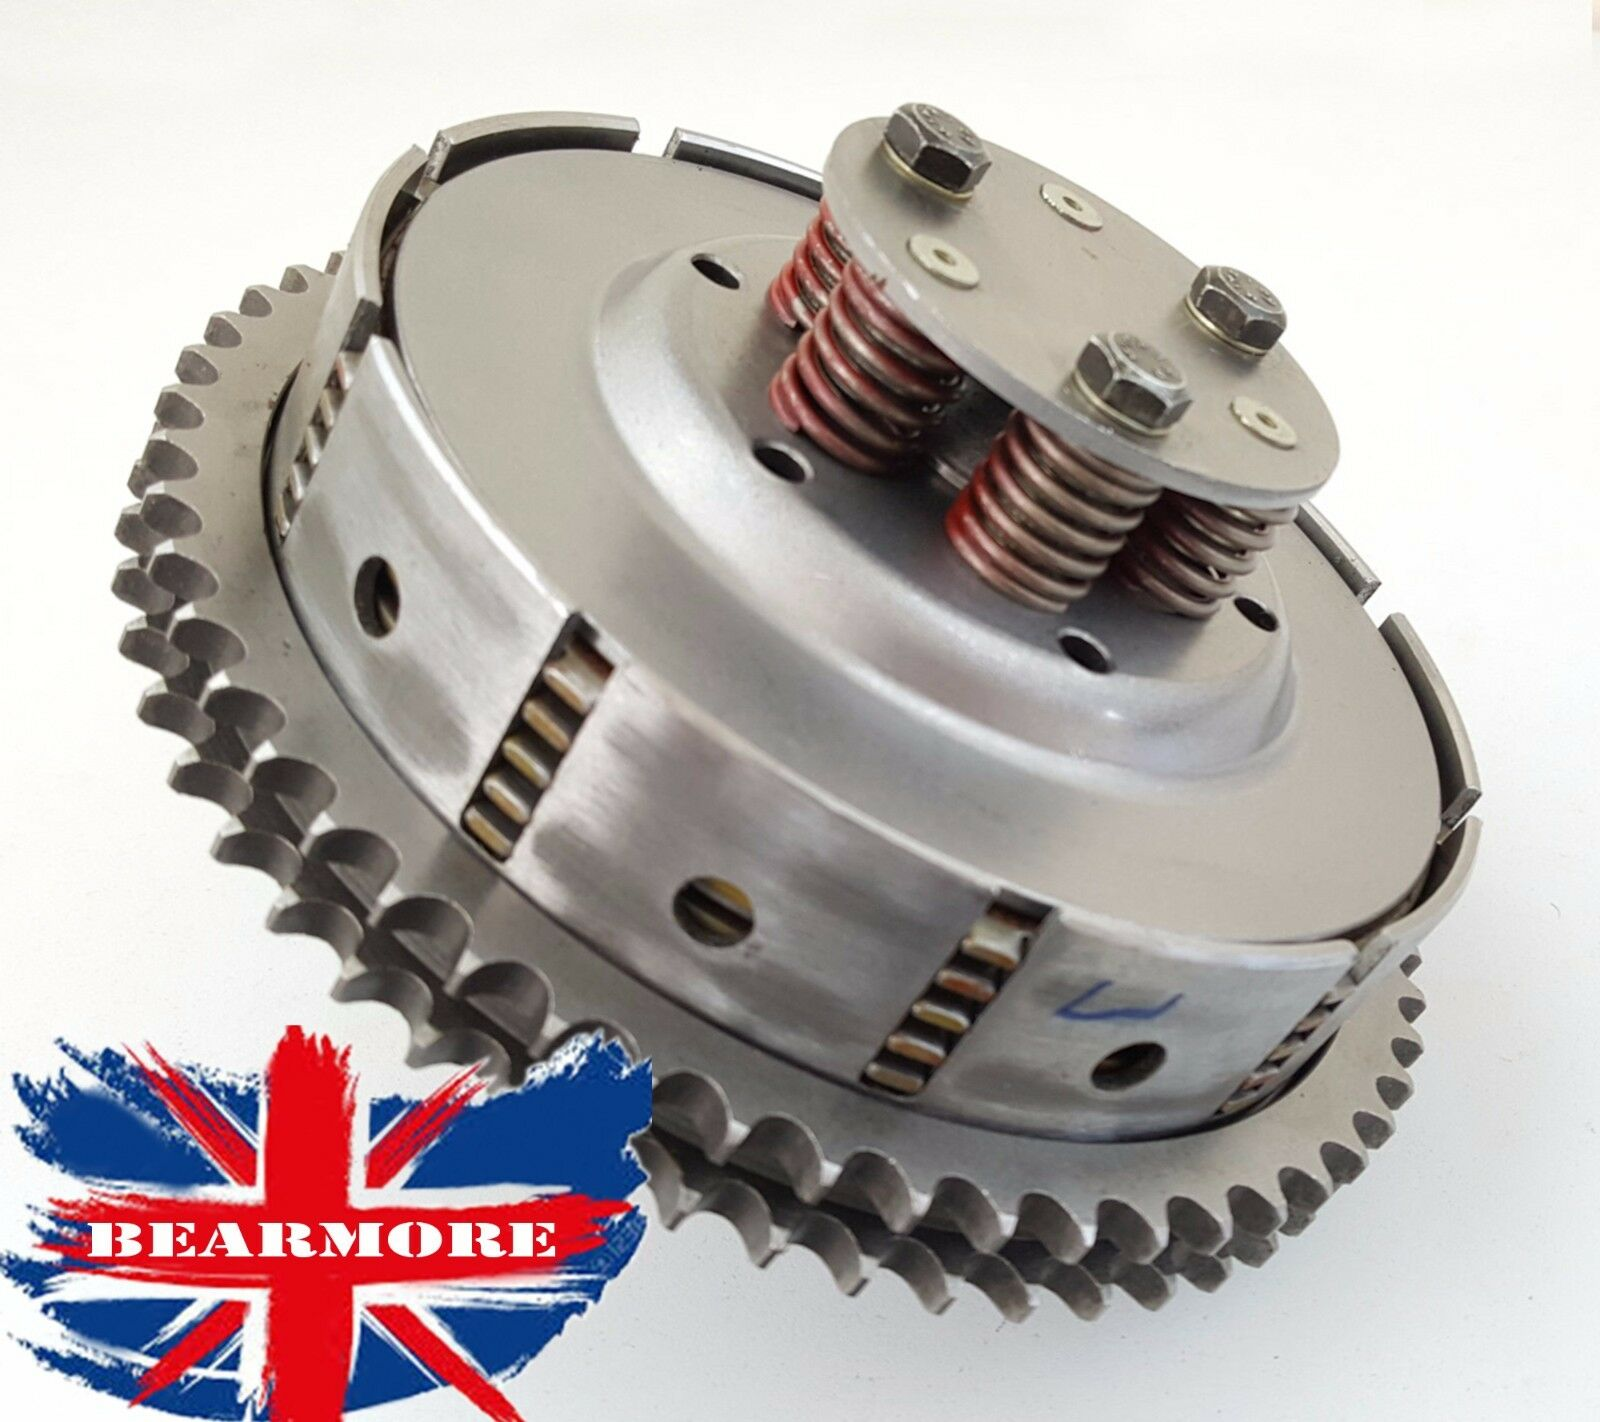 CLUTCH 5 SPEED 5 PLATE ASSEMBLY 5 PLATE FOR ROYAL ENFIELD ELECTRA BULLET 5SPEED